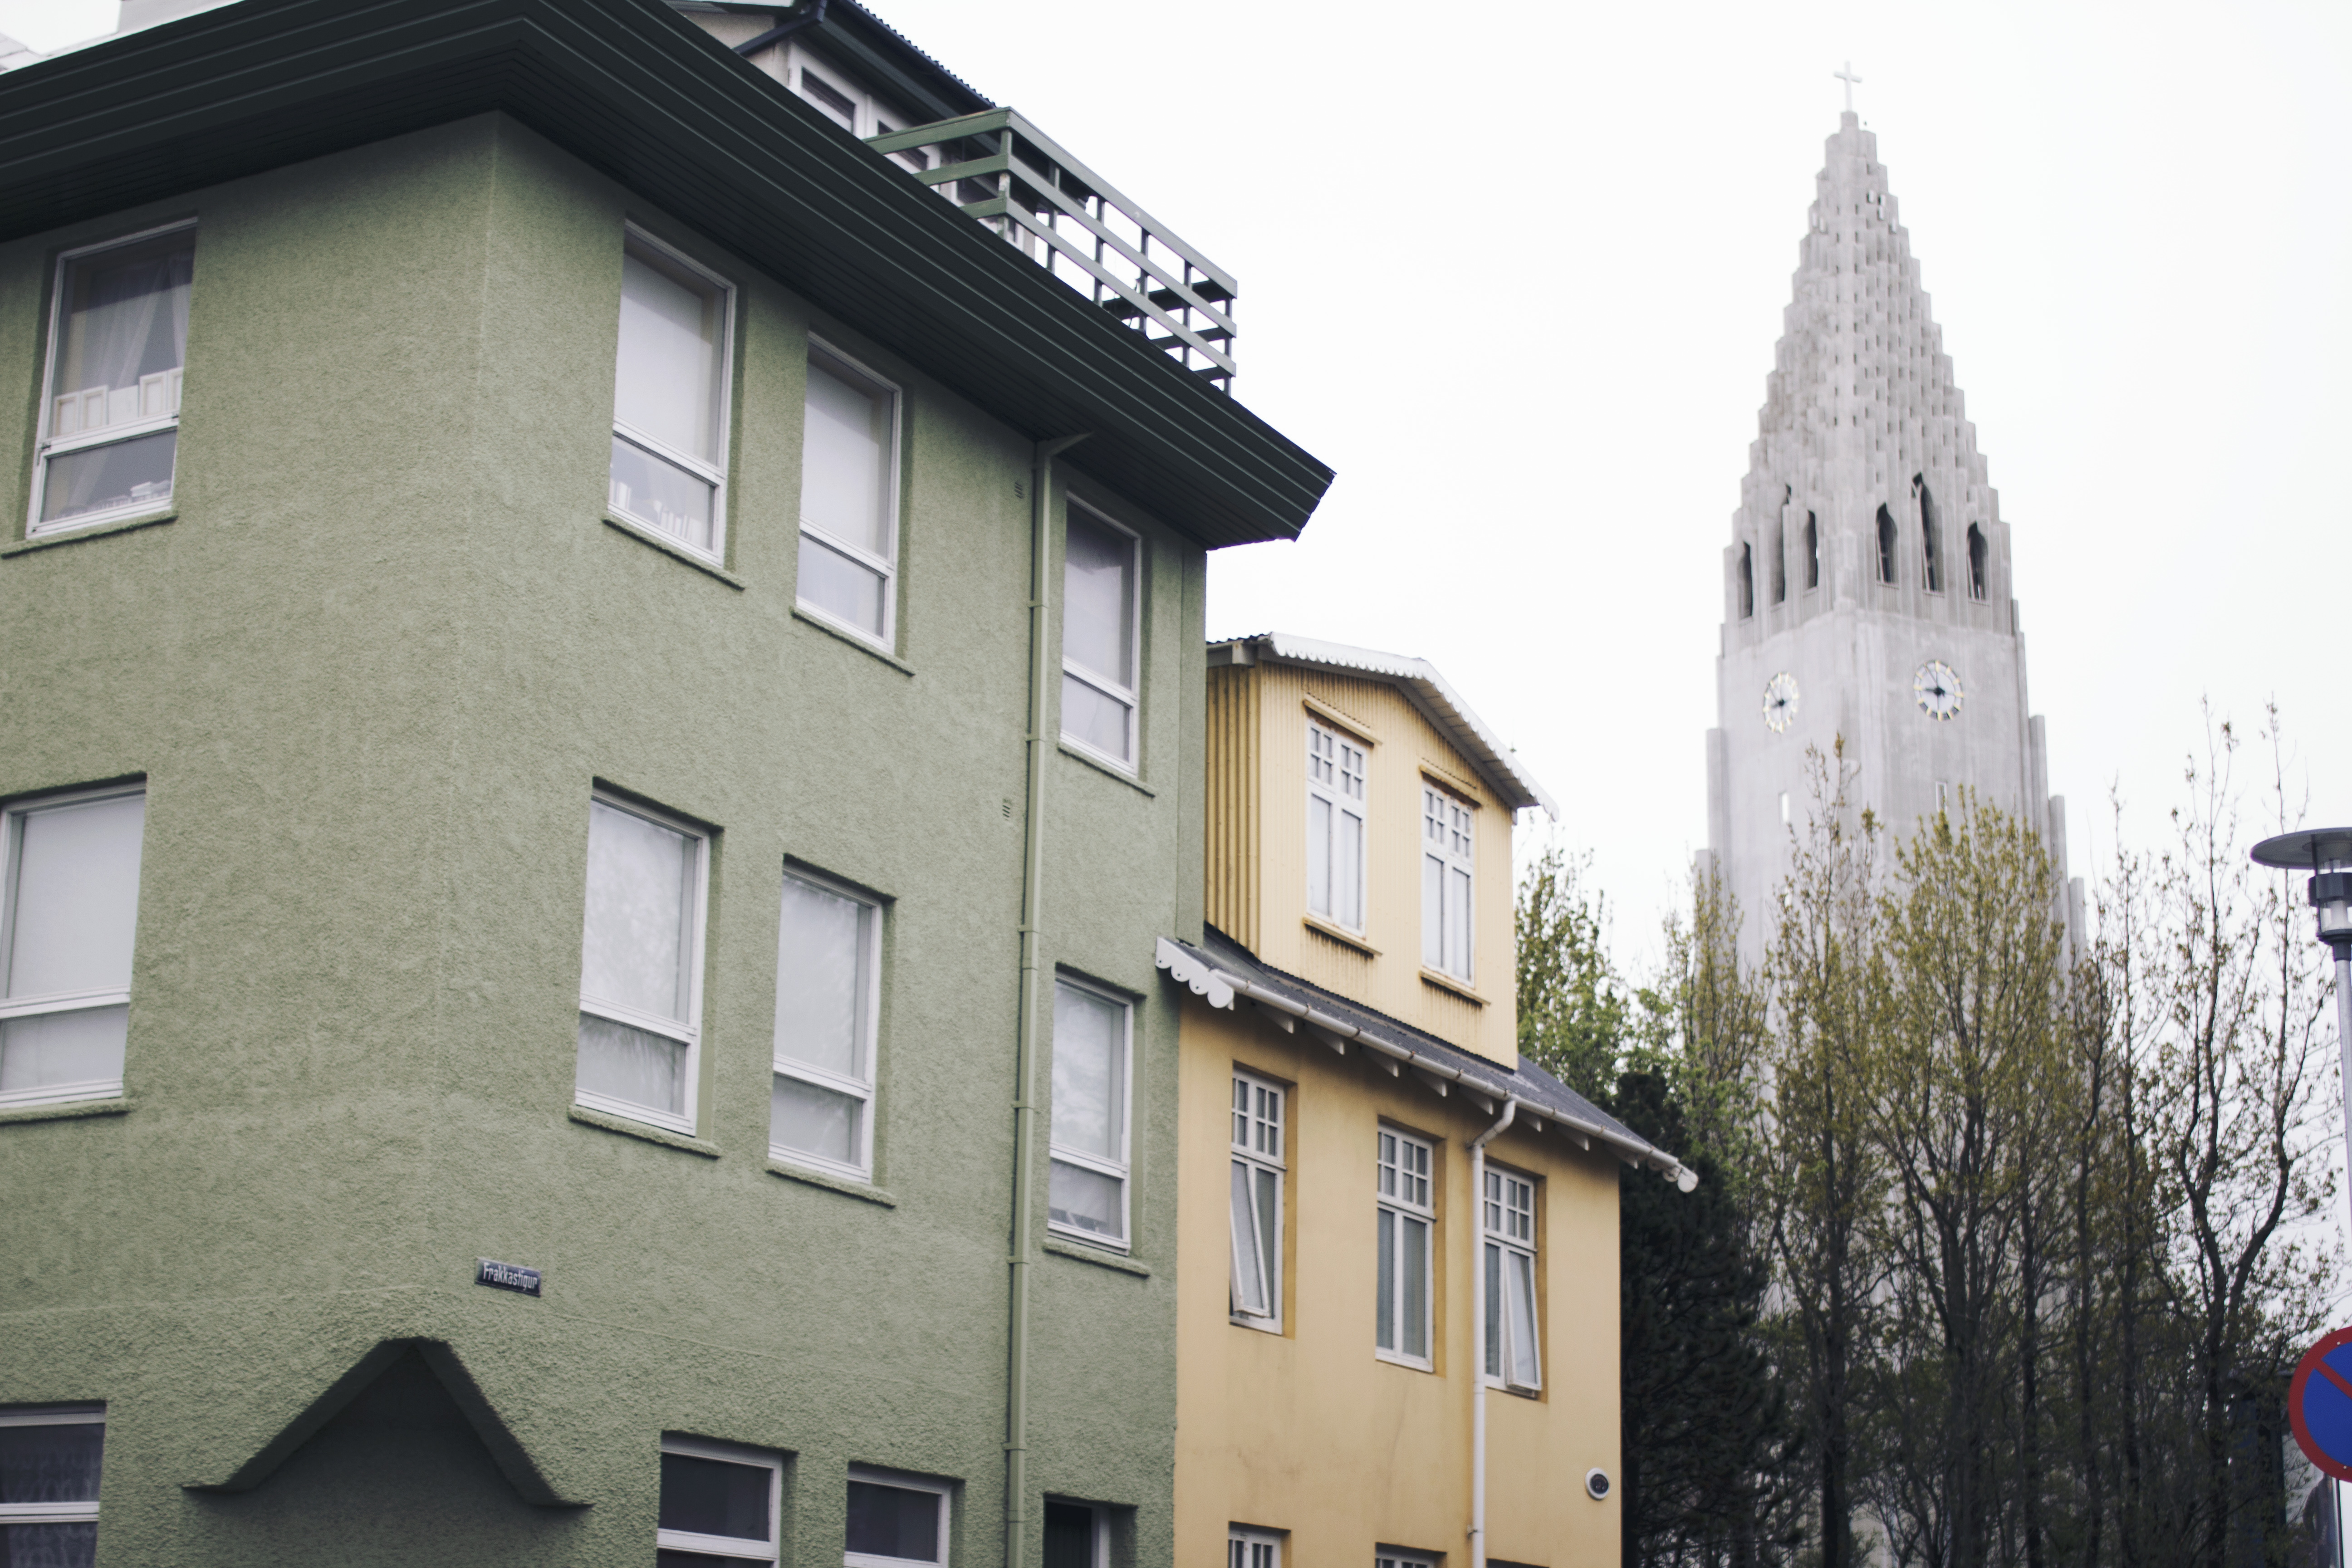 Hallgrímskirkja, the largest church in Iceland, sits in the main square of  Reykjavik, looming over the city with its gigantic steeple.